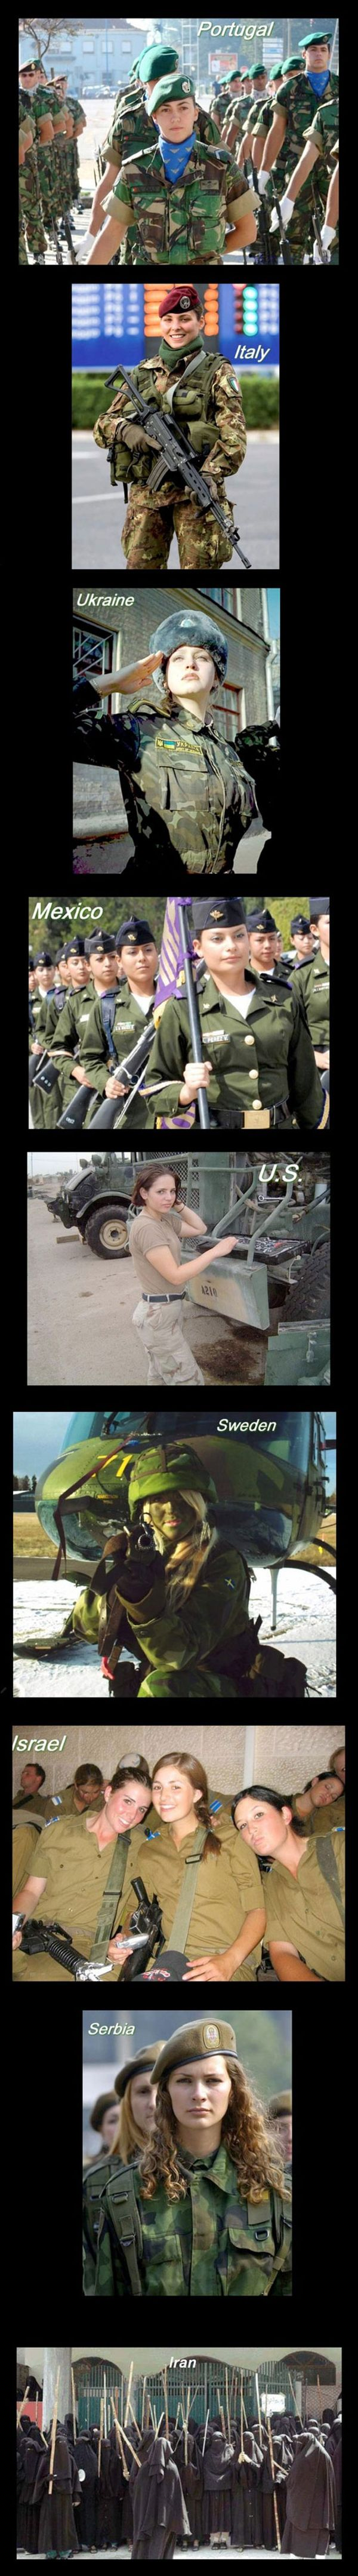 Army Women Around The World - Military humor